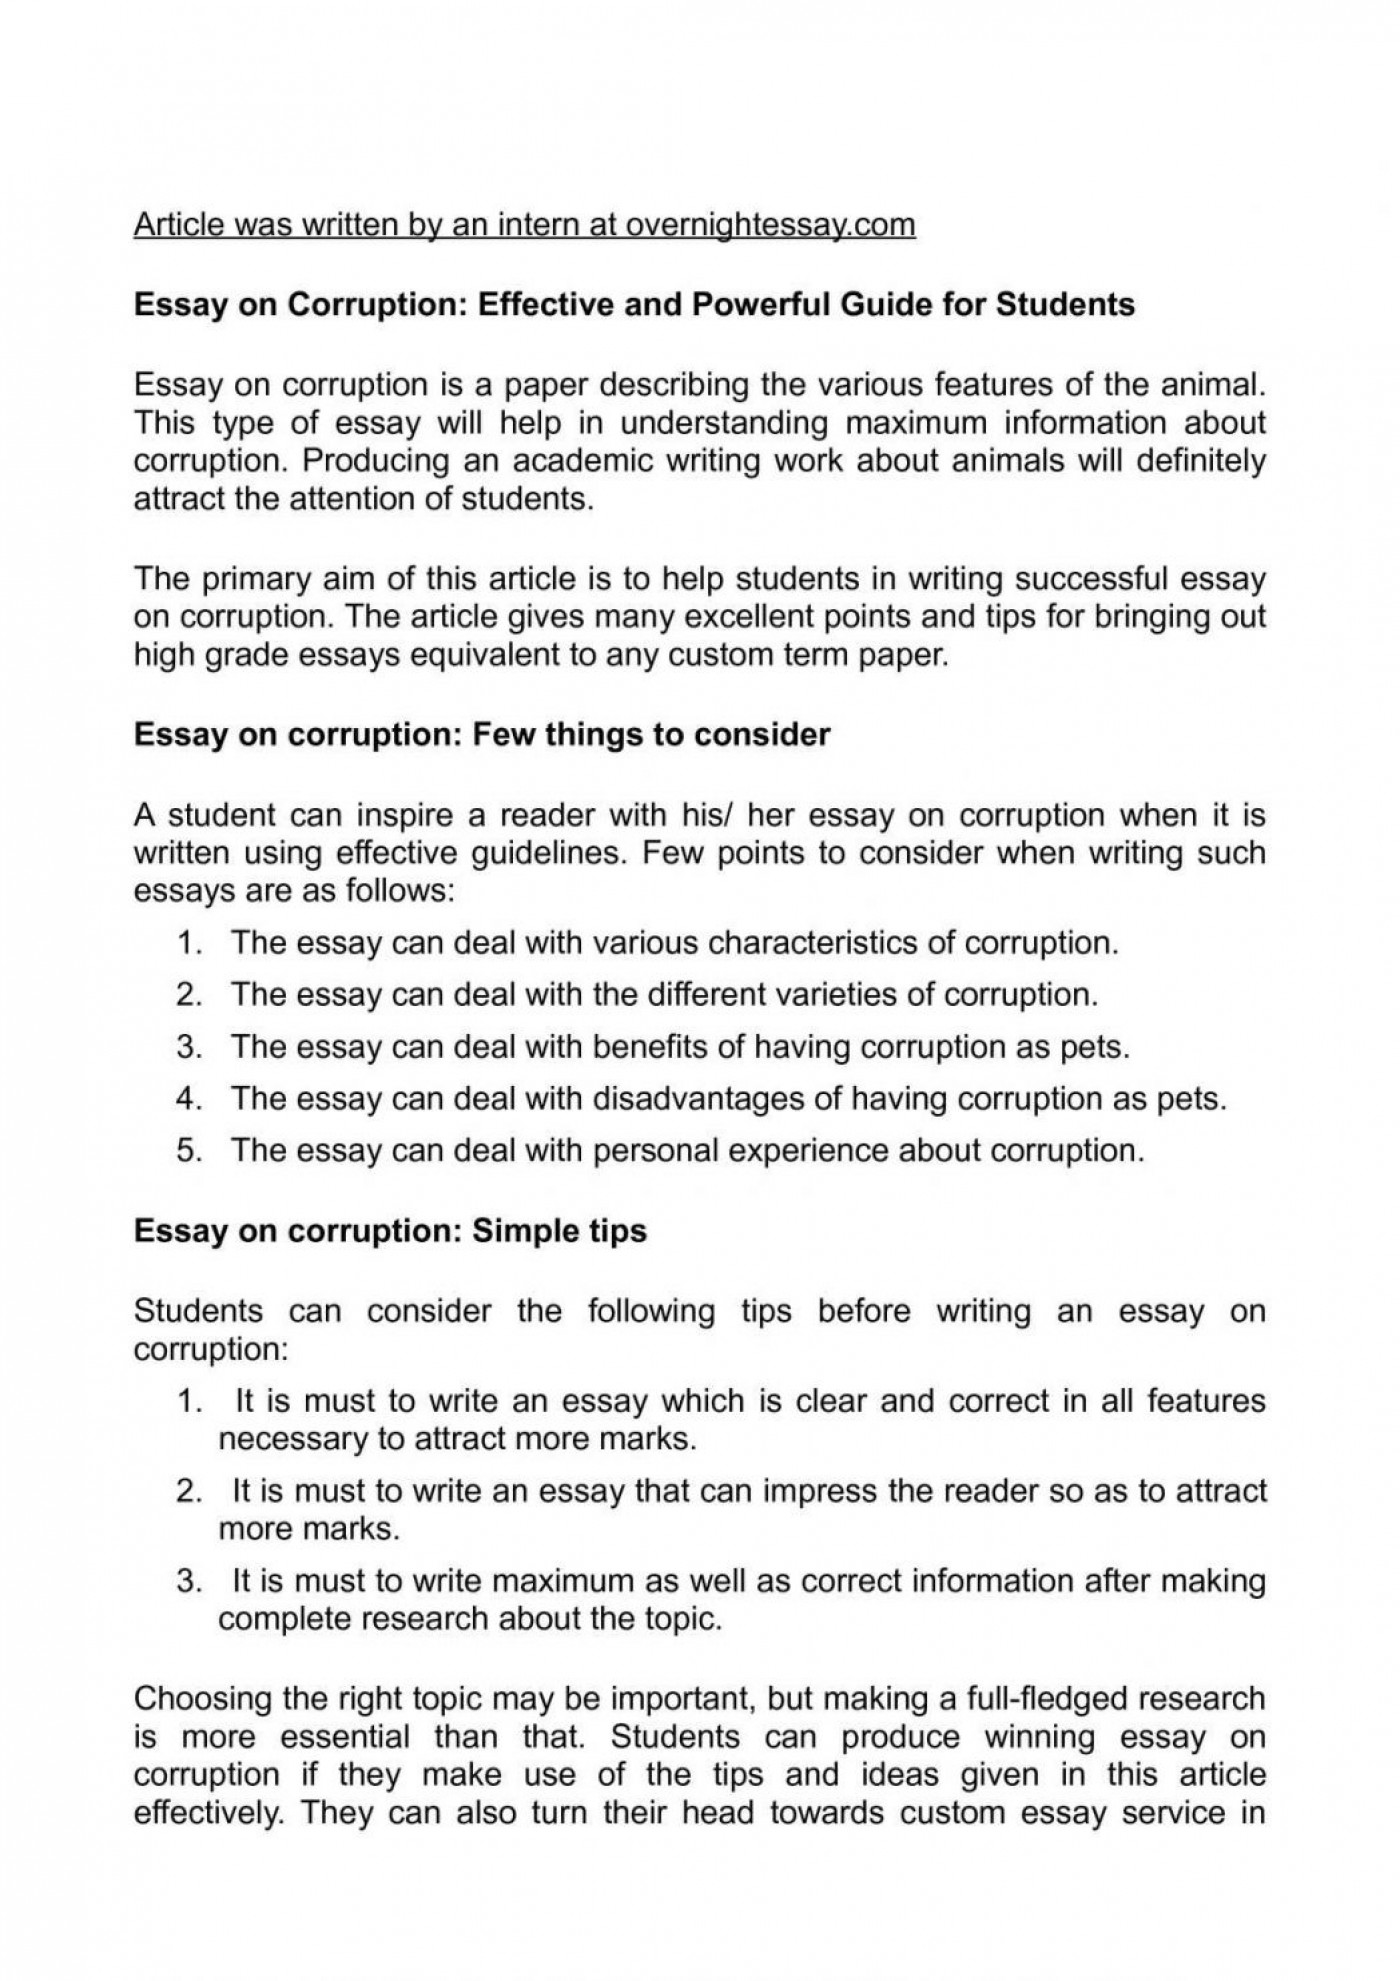 015 How To Write This I Believe Essay Easy Essays Calam Atilde Copy O On Corruption Effective Samples Good Topics Template 1048x1483 Fantastic A Things What 1400